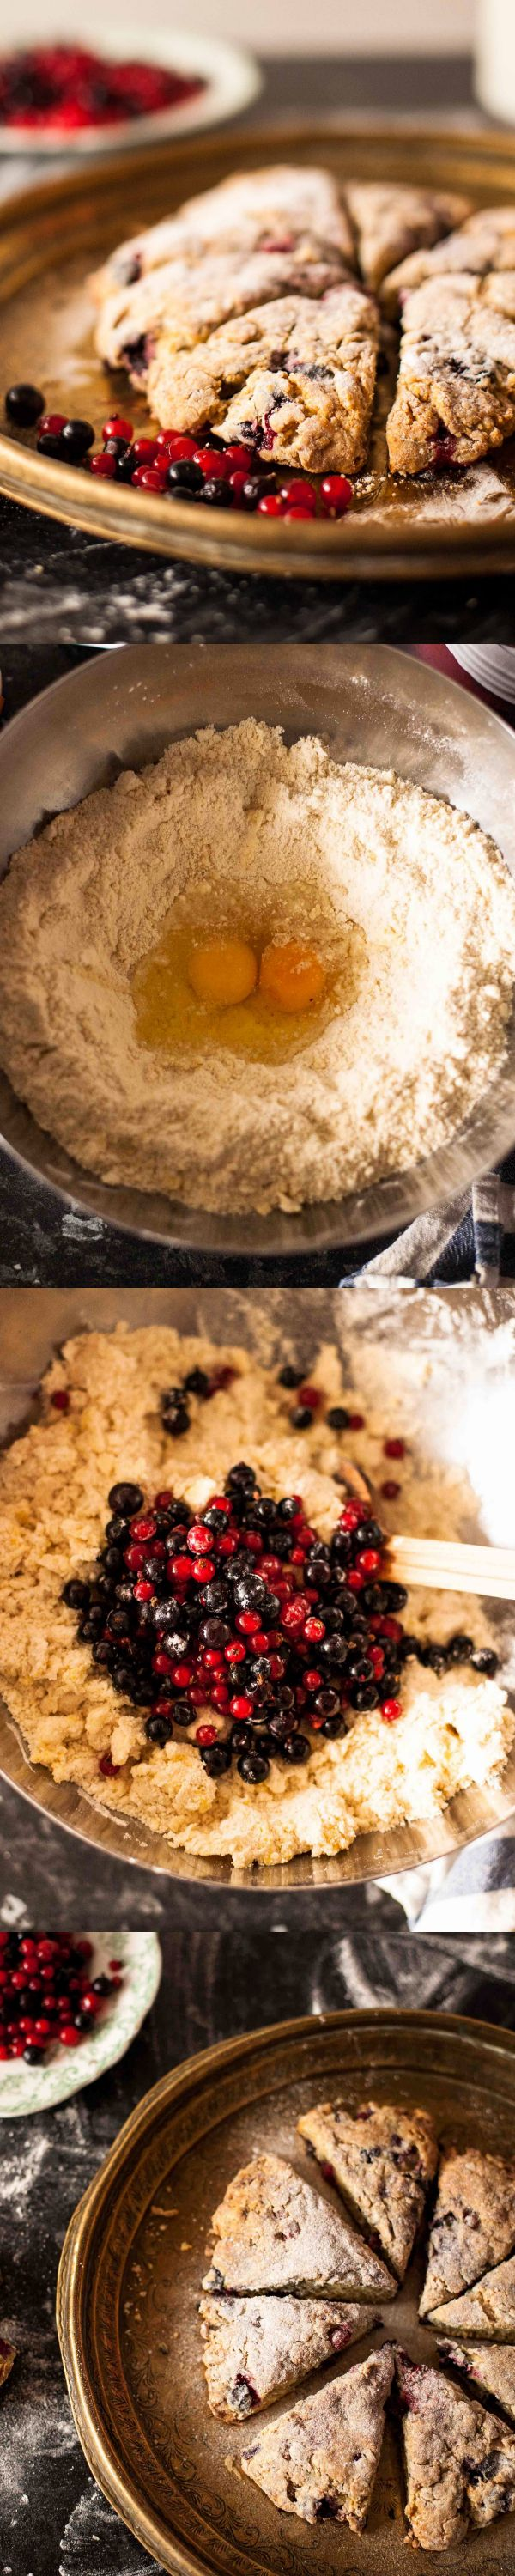 Crumbly Scones with Red and Black Currants